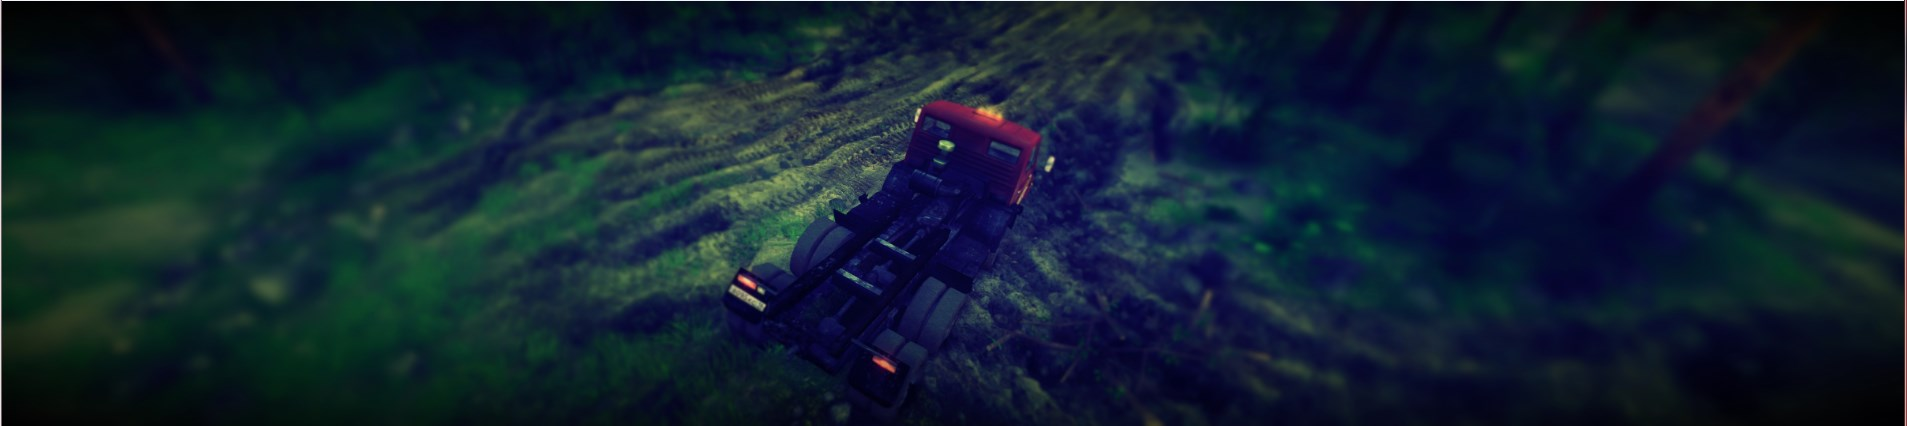 Drive shafts are beautifully animated